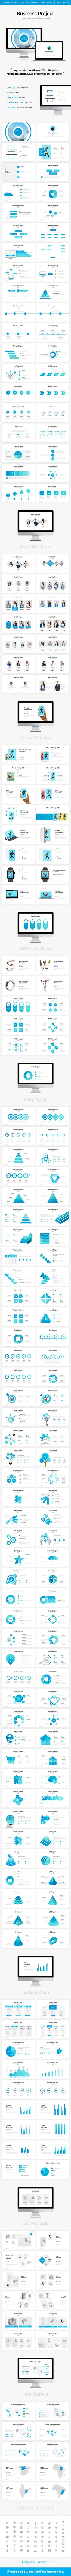 Business Project Powerpoint Template - Business PowerPoint Templates